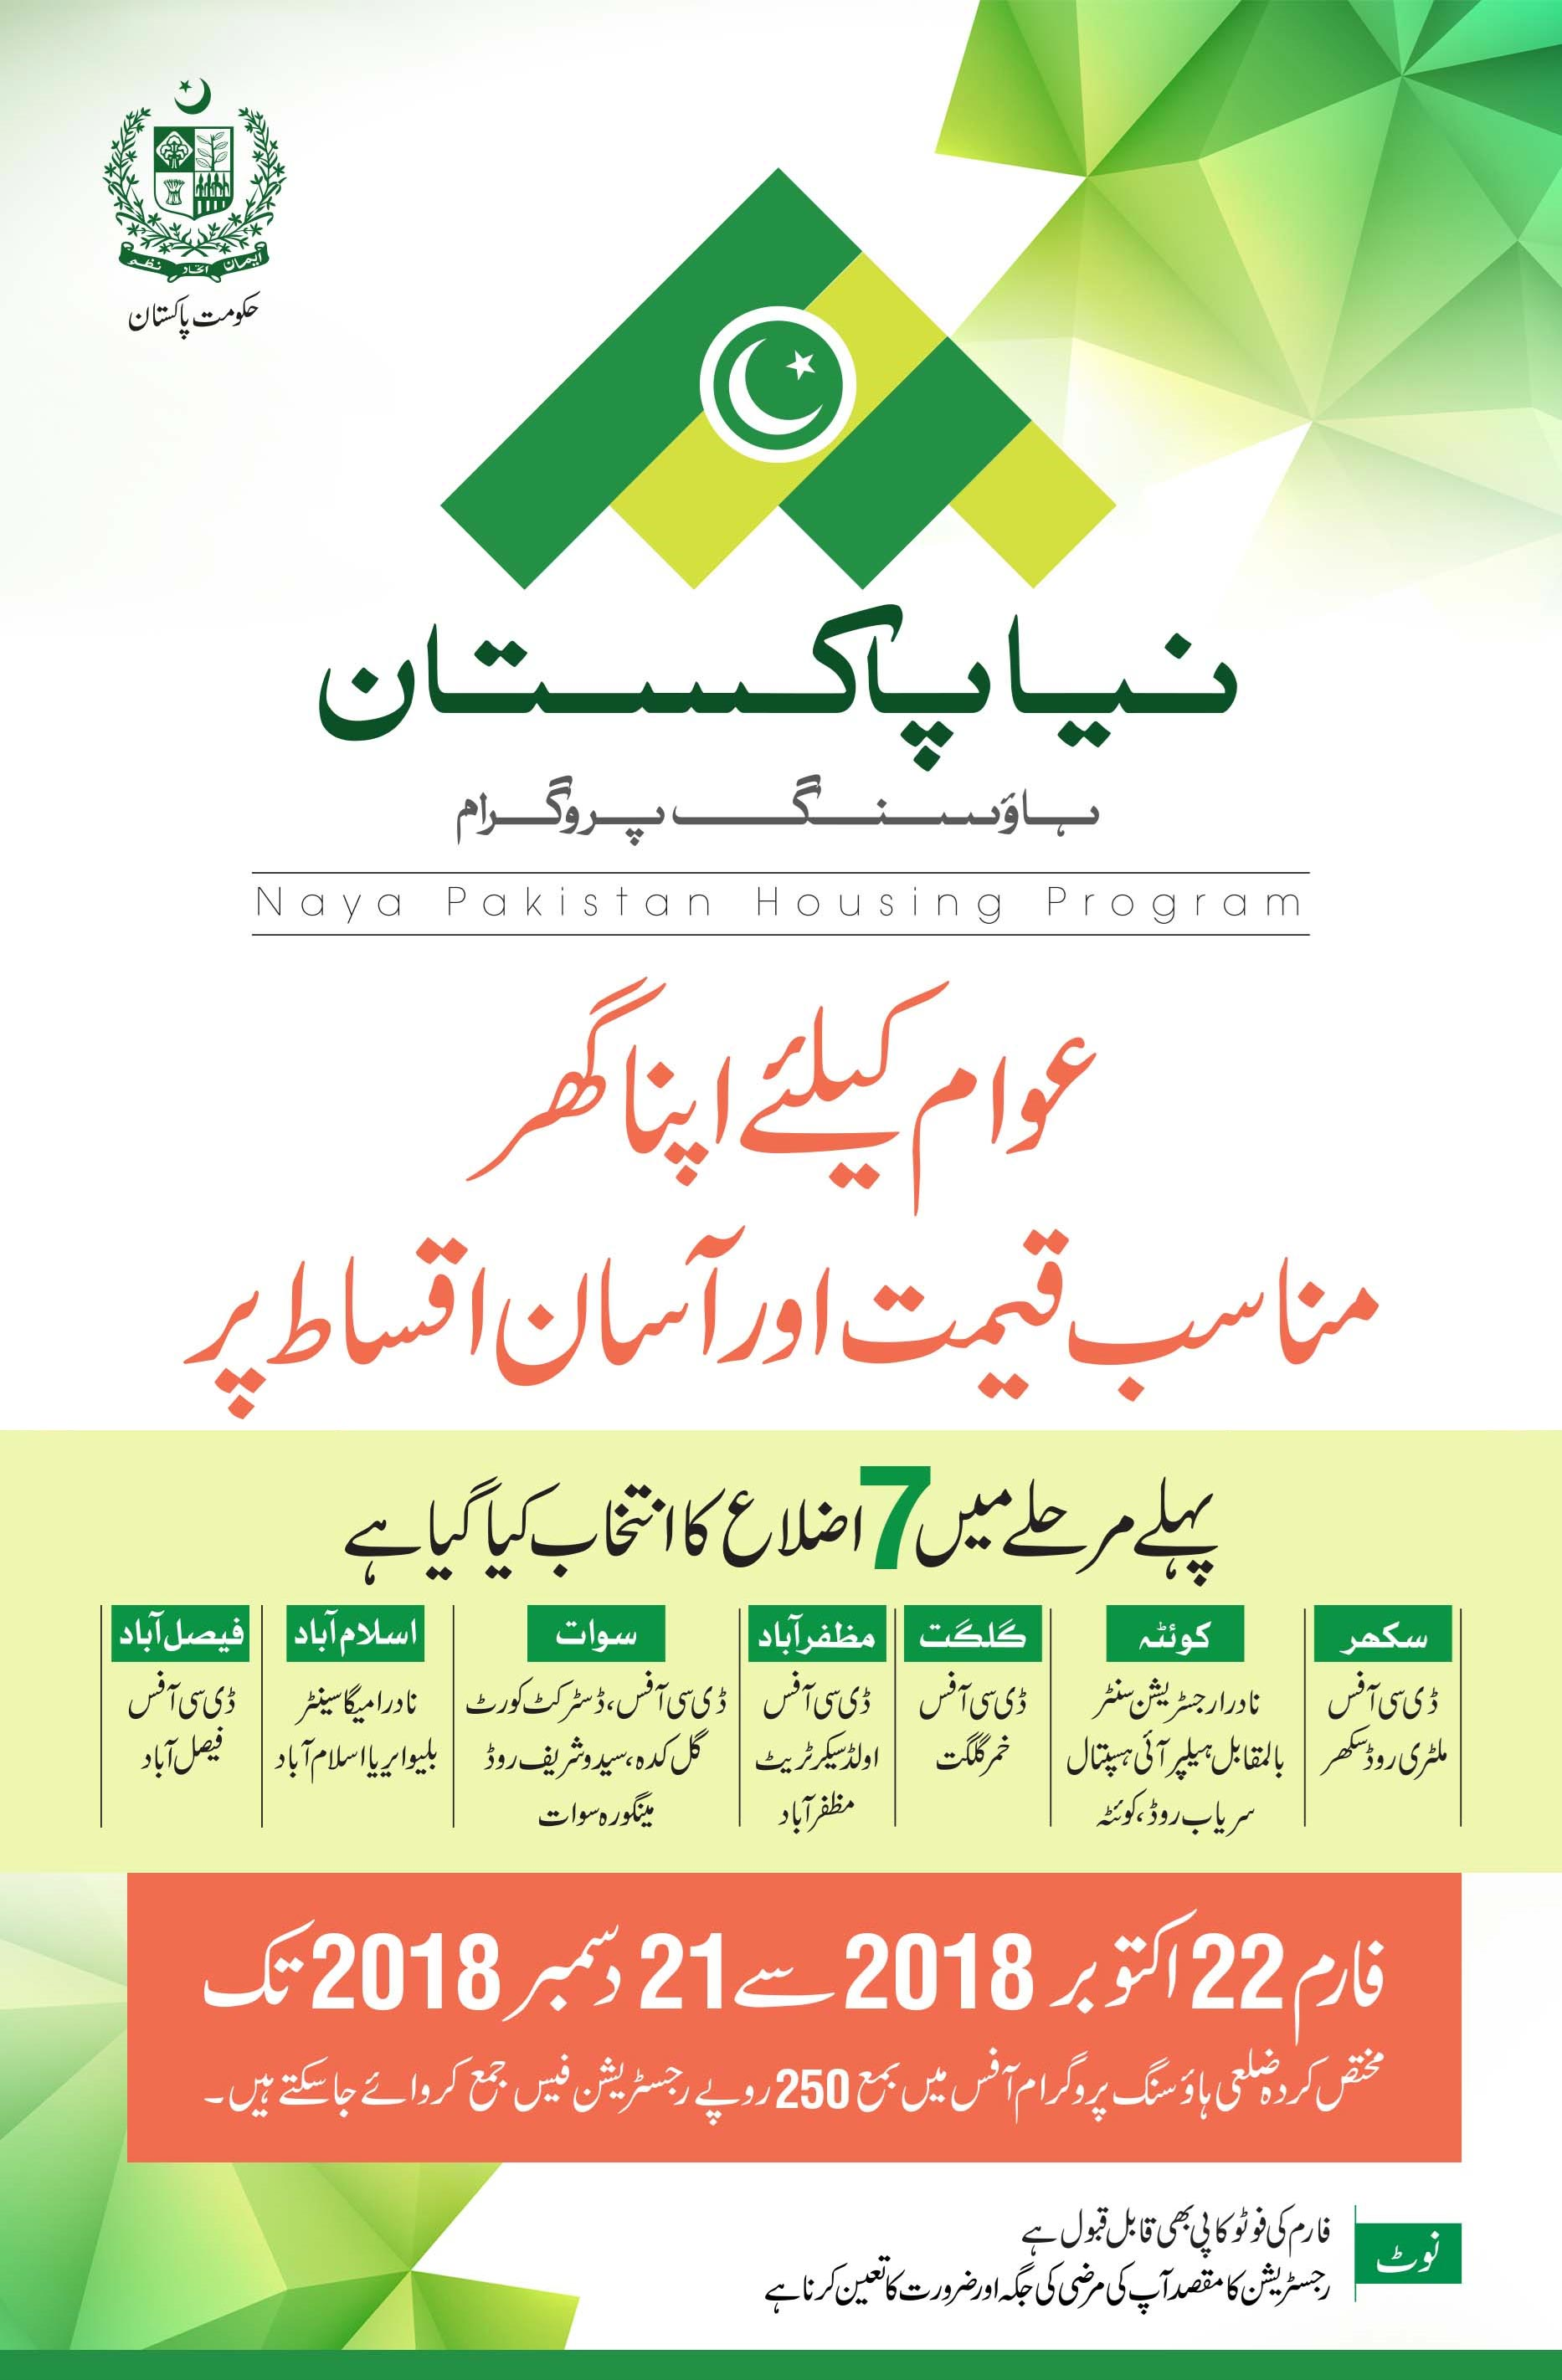 How to Apply for Naya Pakistan Housing Programme